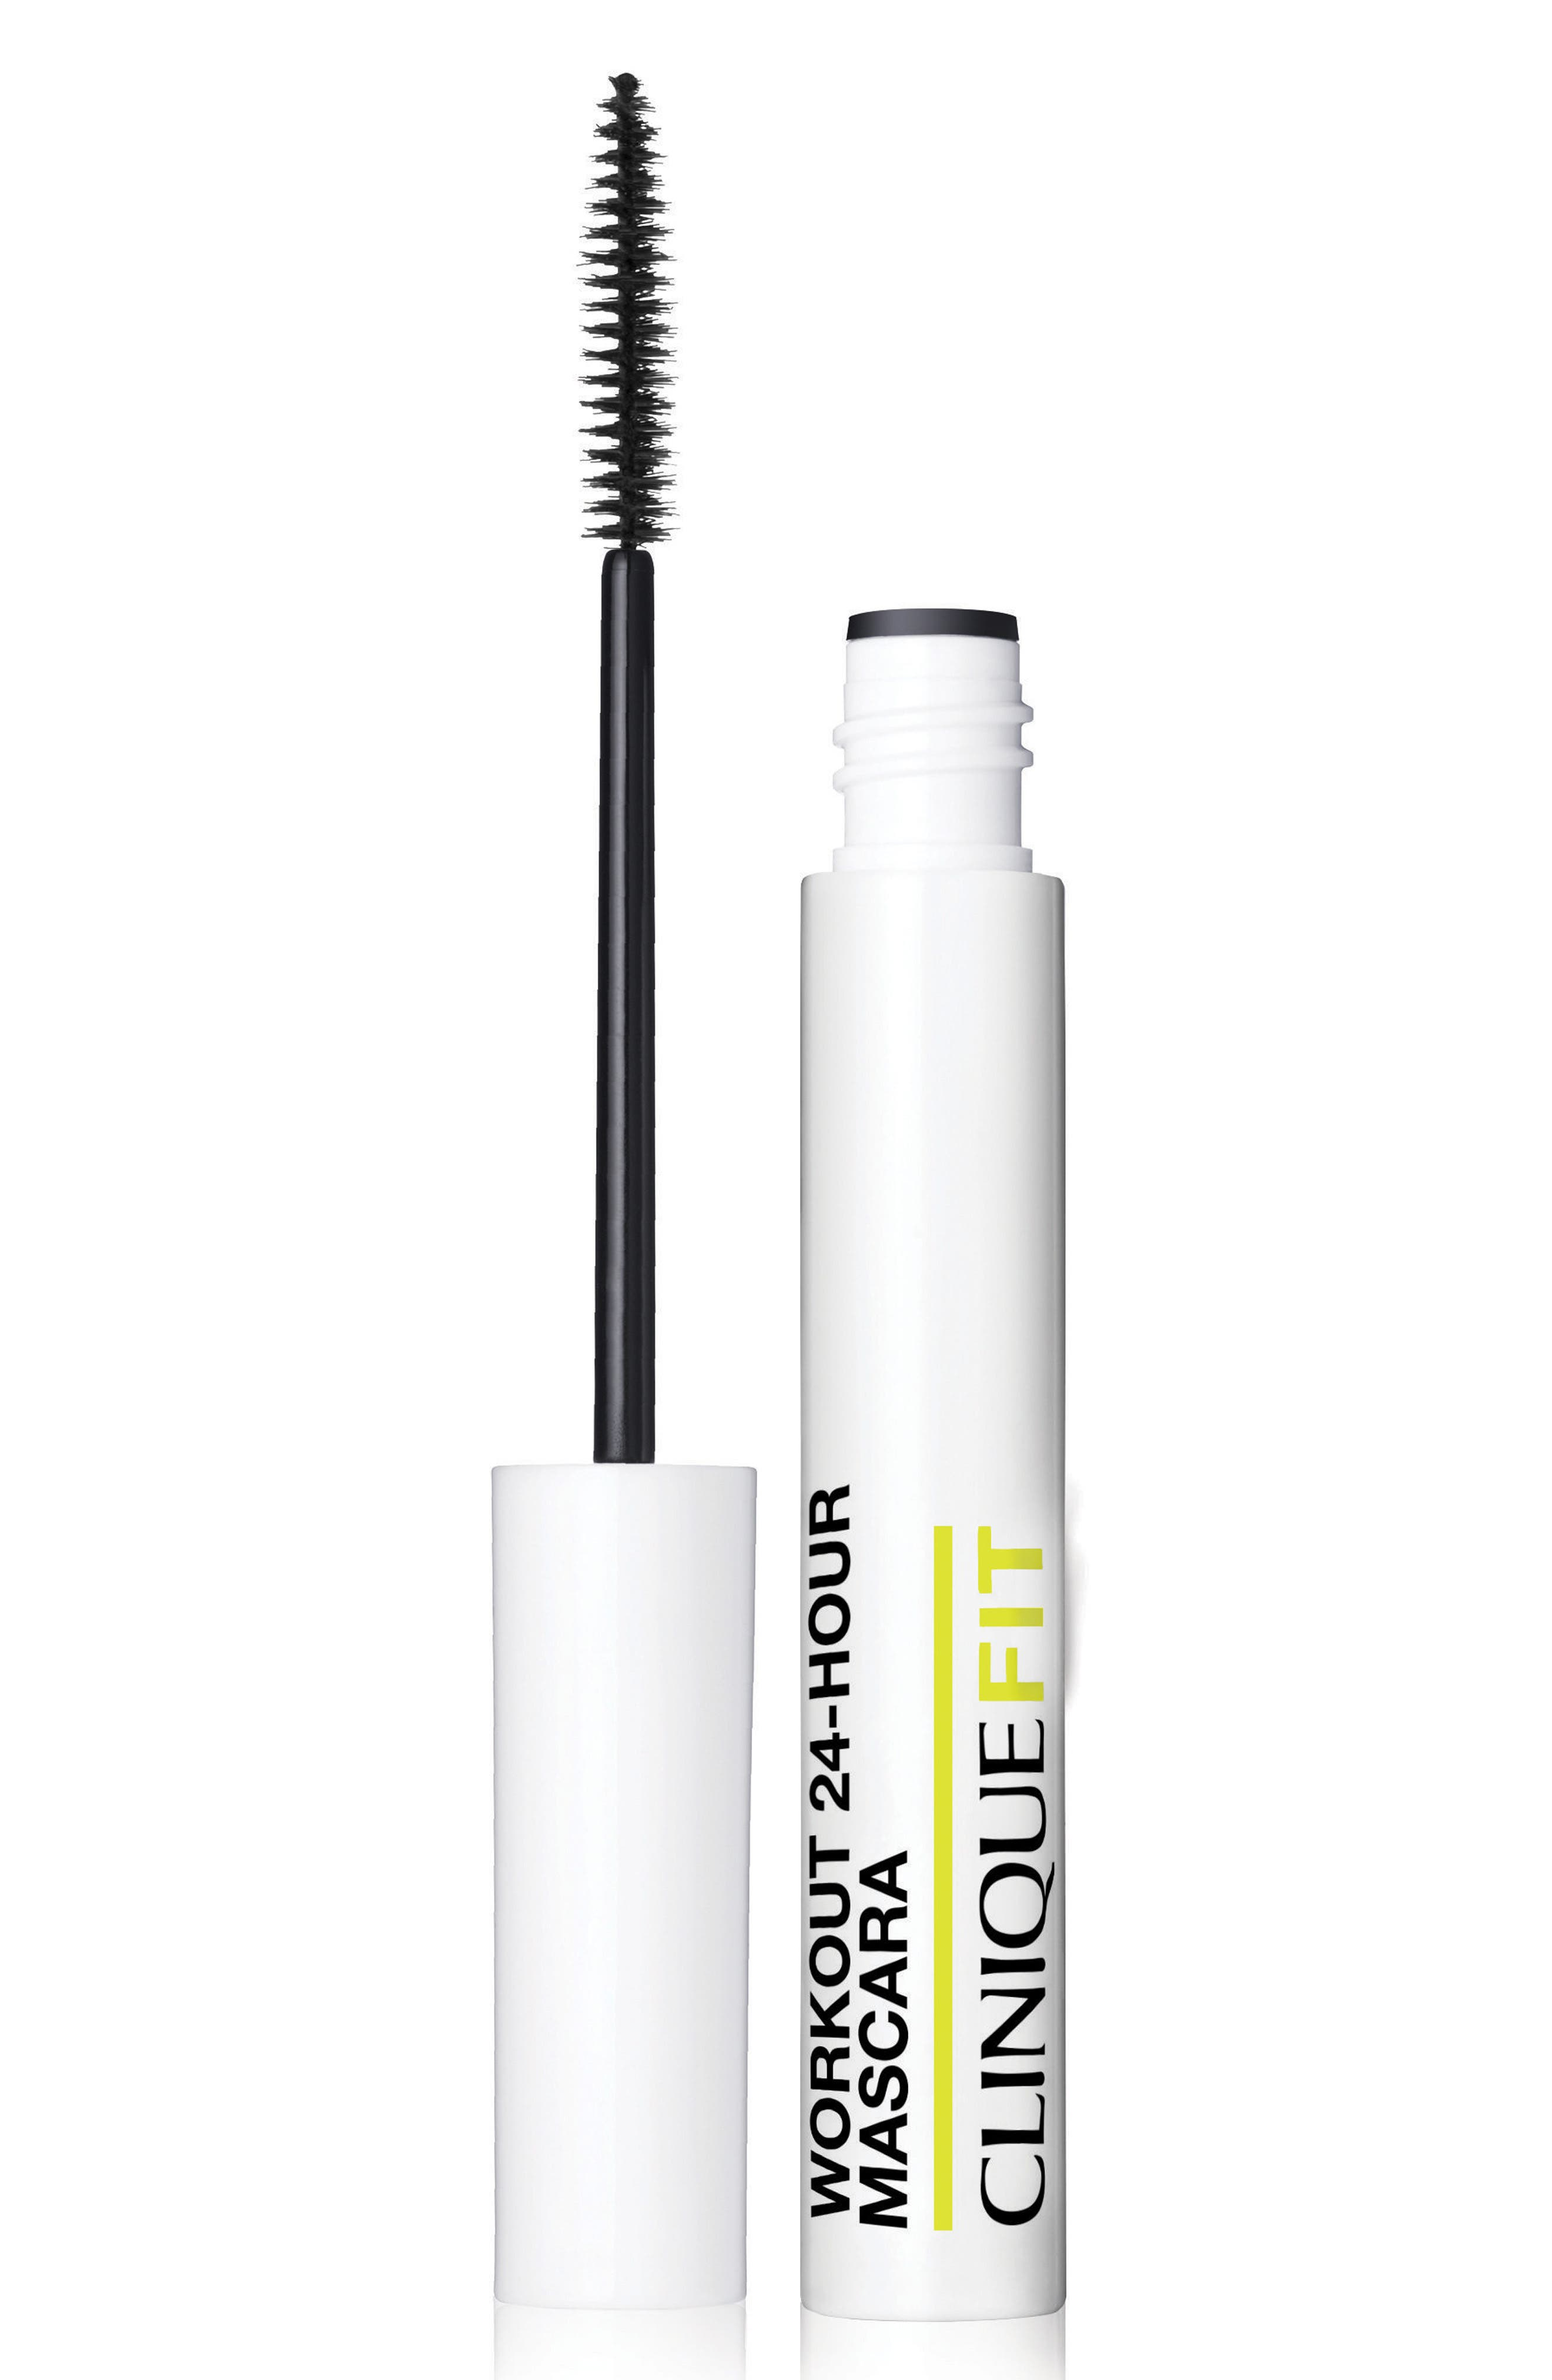 CliniqueFIT Workout 24-Hour Mascara,                         Main,                         color, No Color